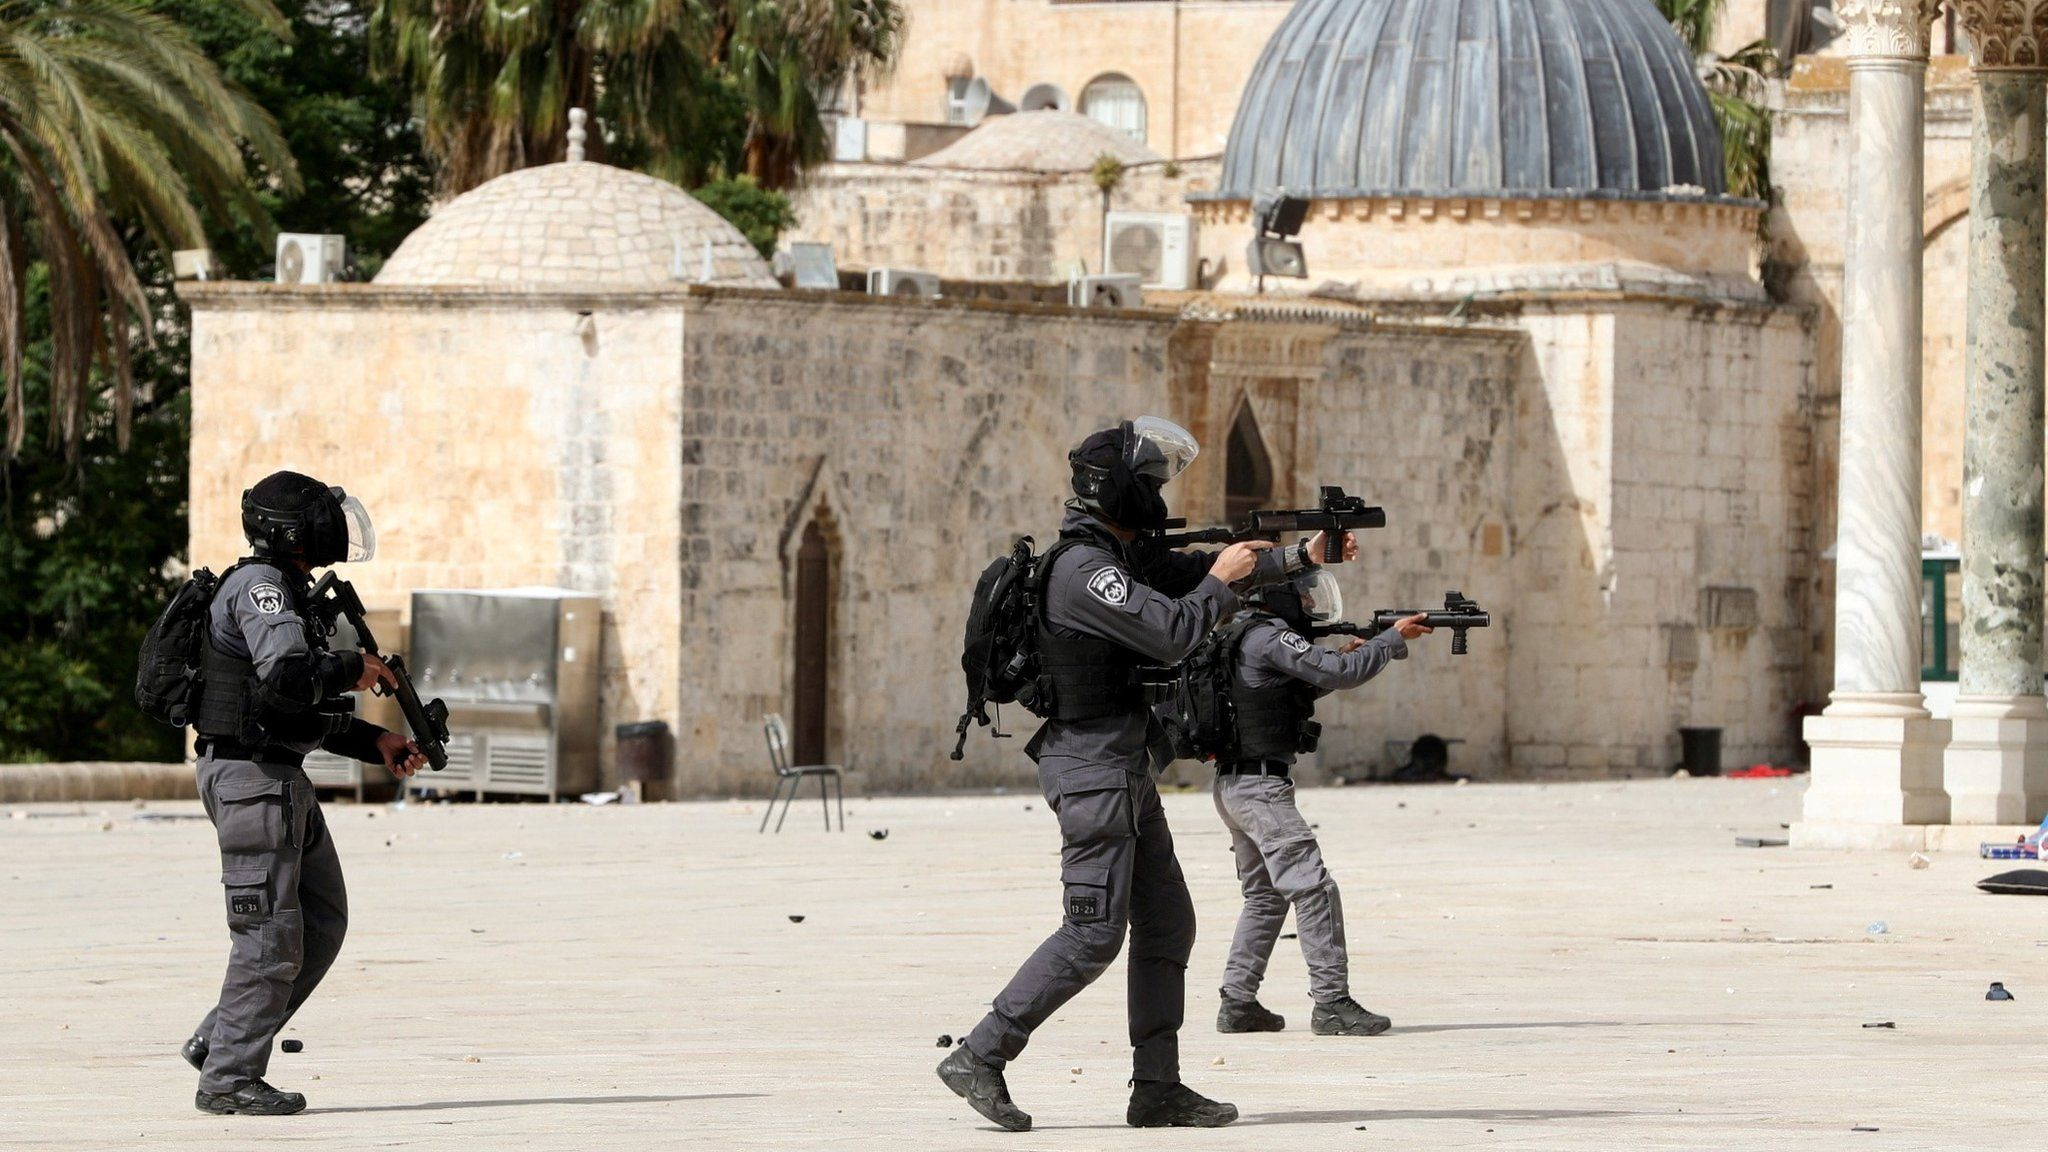 Israeli police officer aims a weapon during clashes with Palestinians around the al-Aqsa mosque in occupied East Jerusalem (10 May 2021)